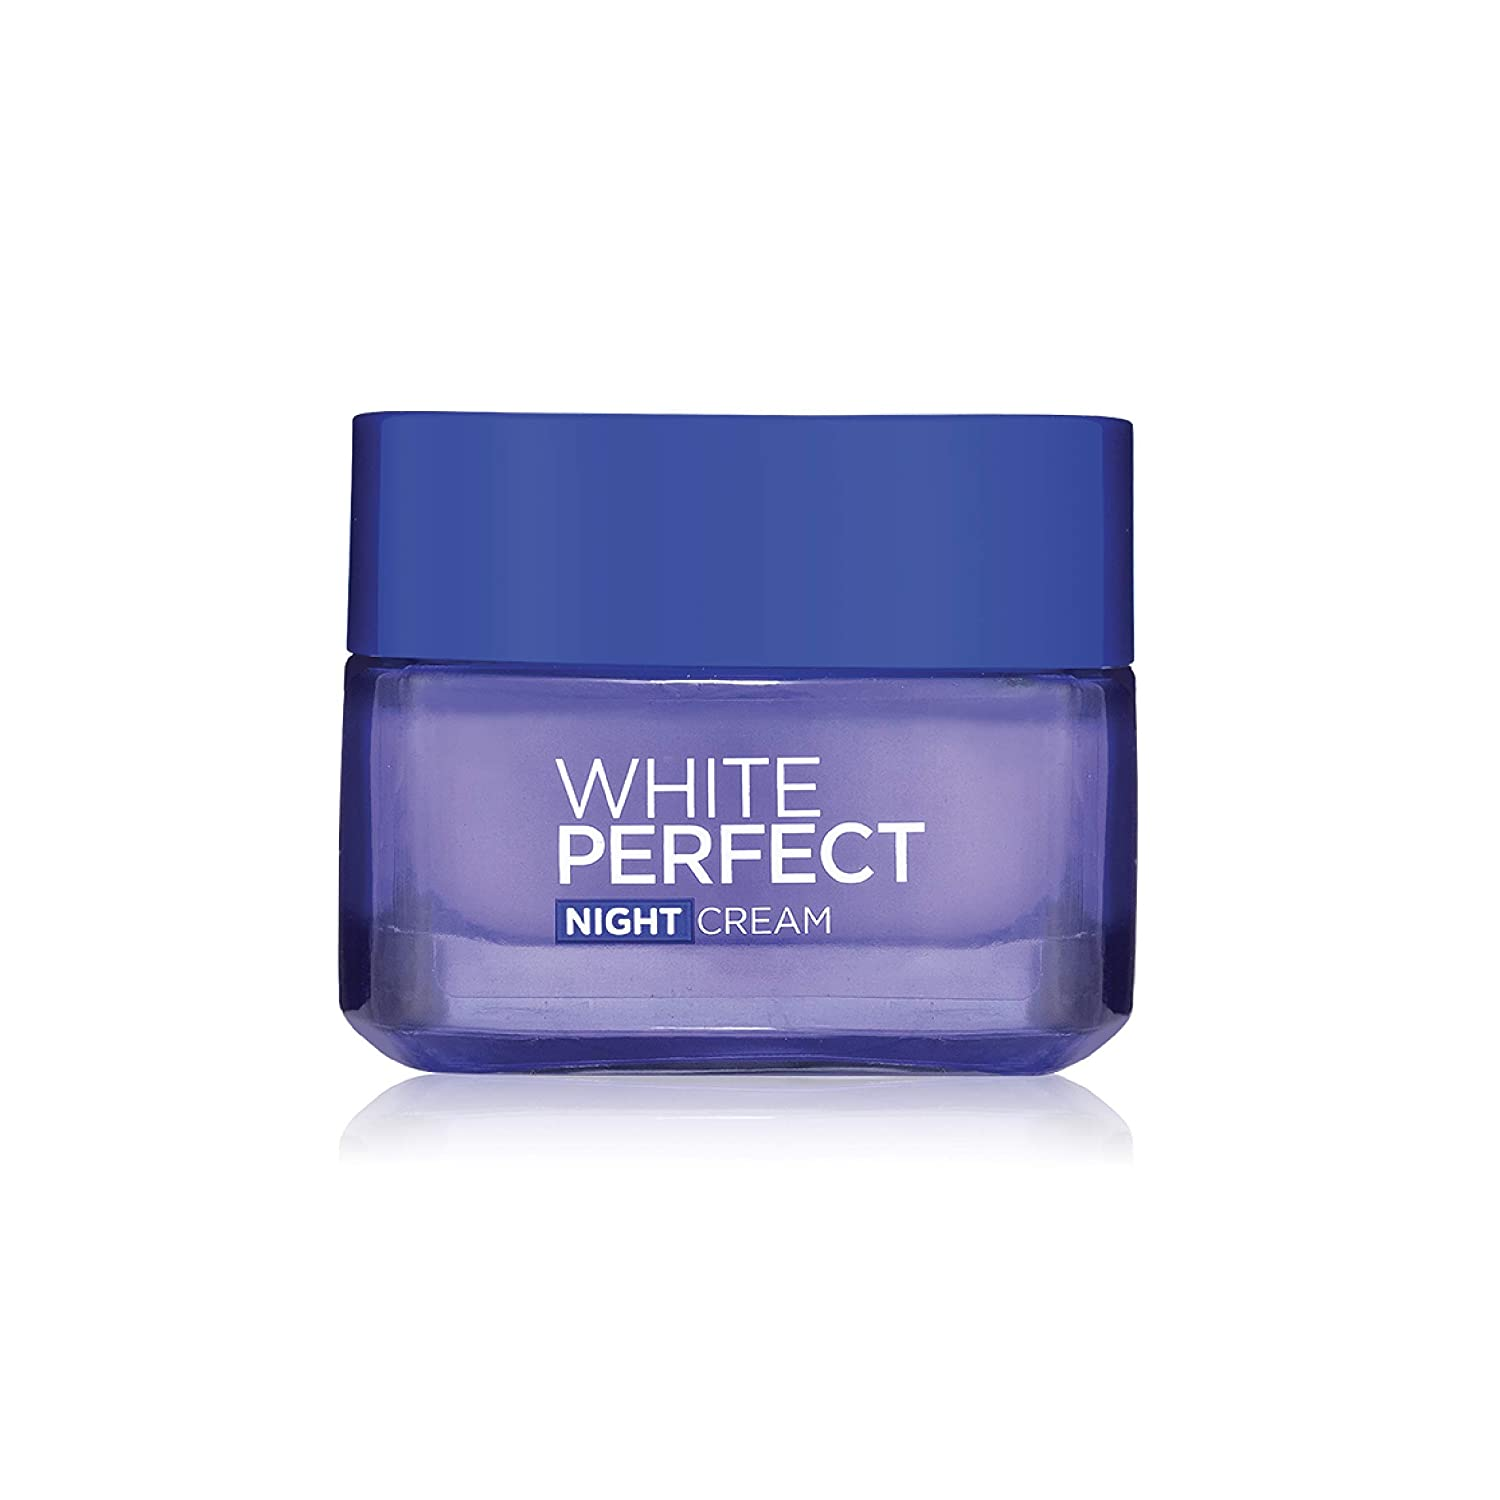 L'Oreal Paris White Perfect Night Cream, 50ml